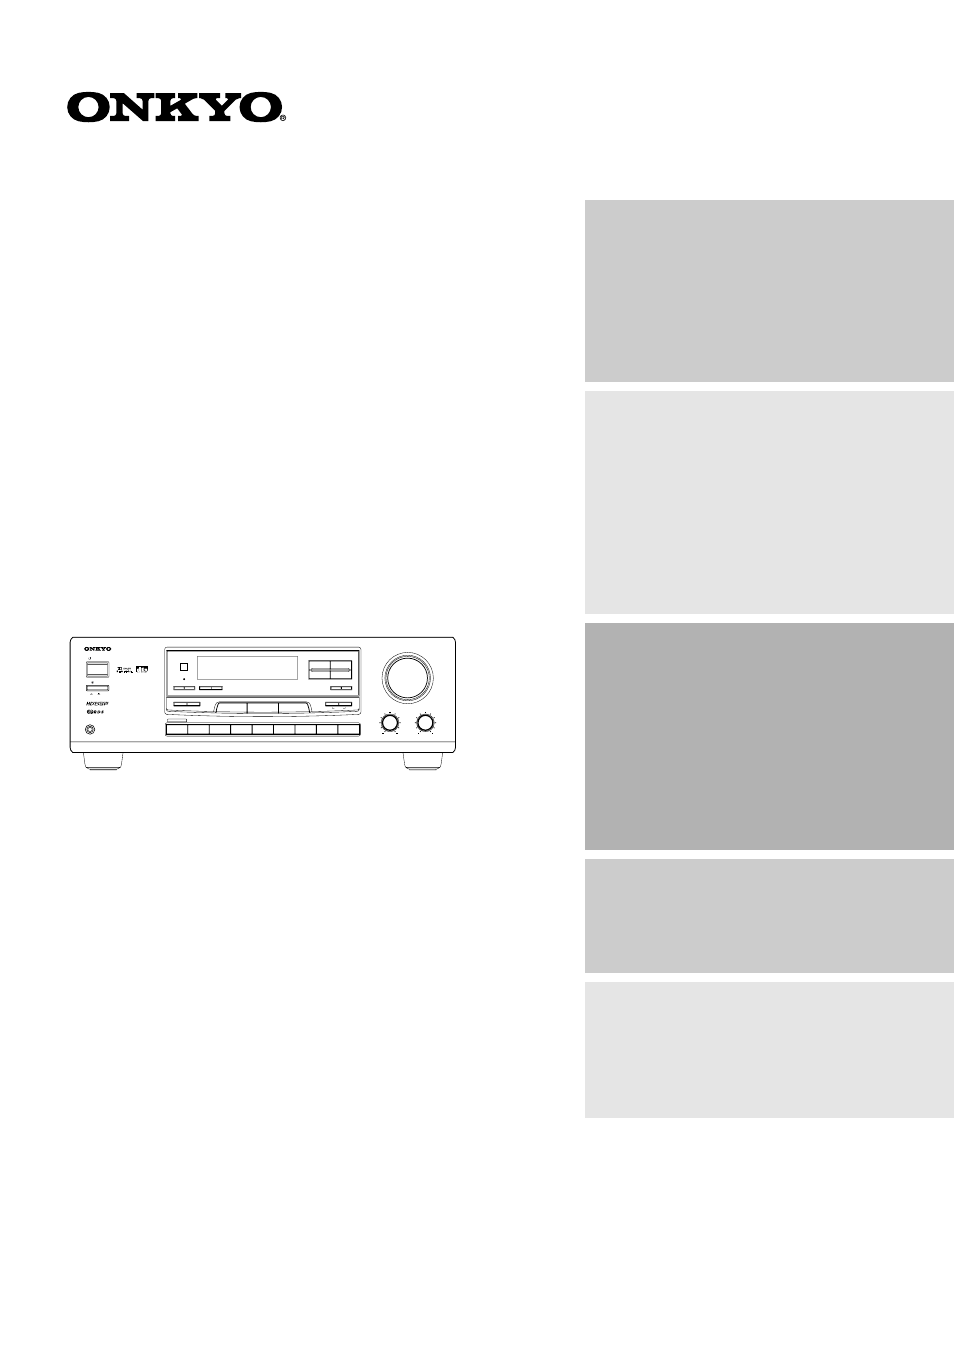 Onkyo TX-DS474 User Manual | 32 pages